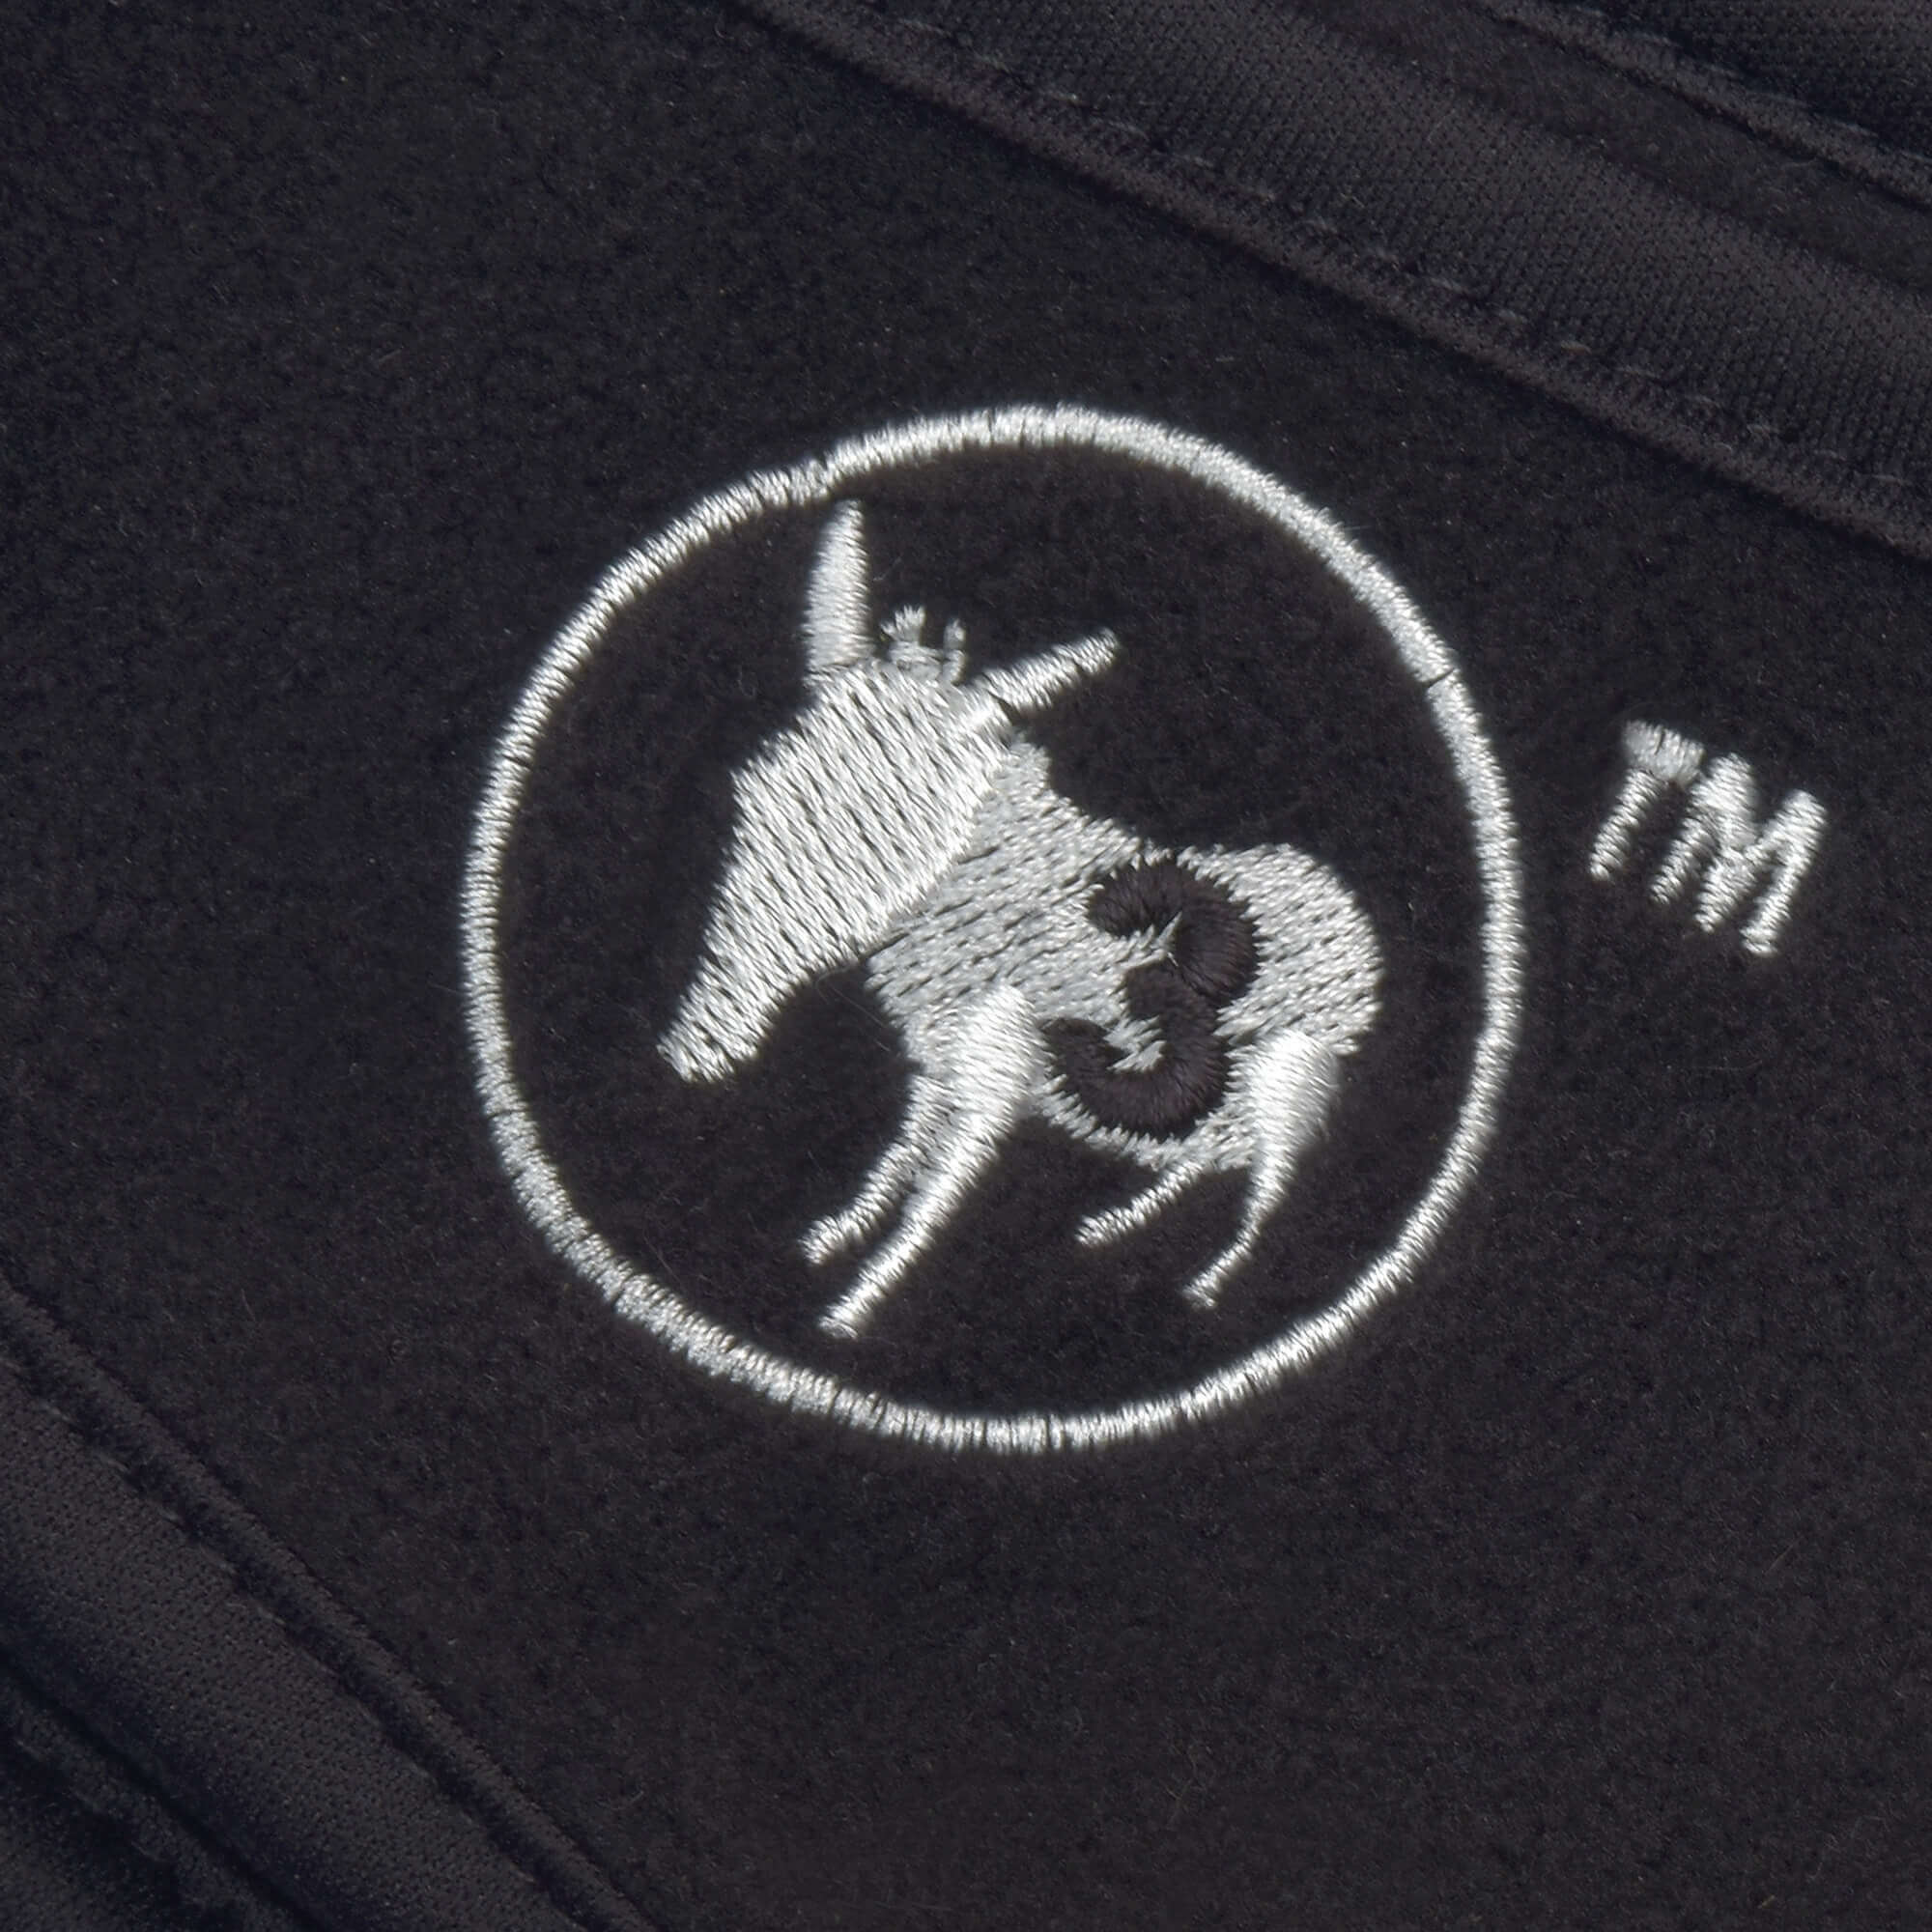 3 donkeys logo in black background and white logo of 3 donkeys